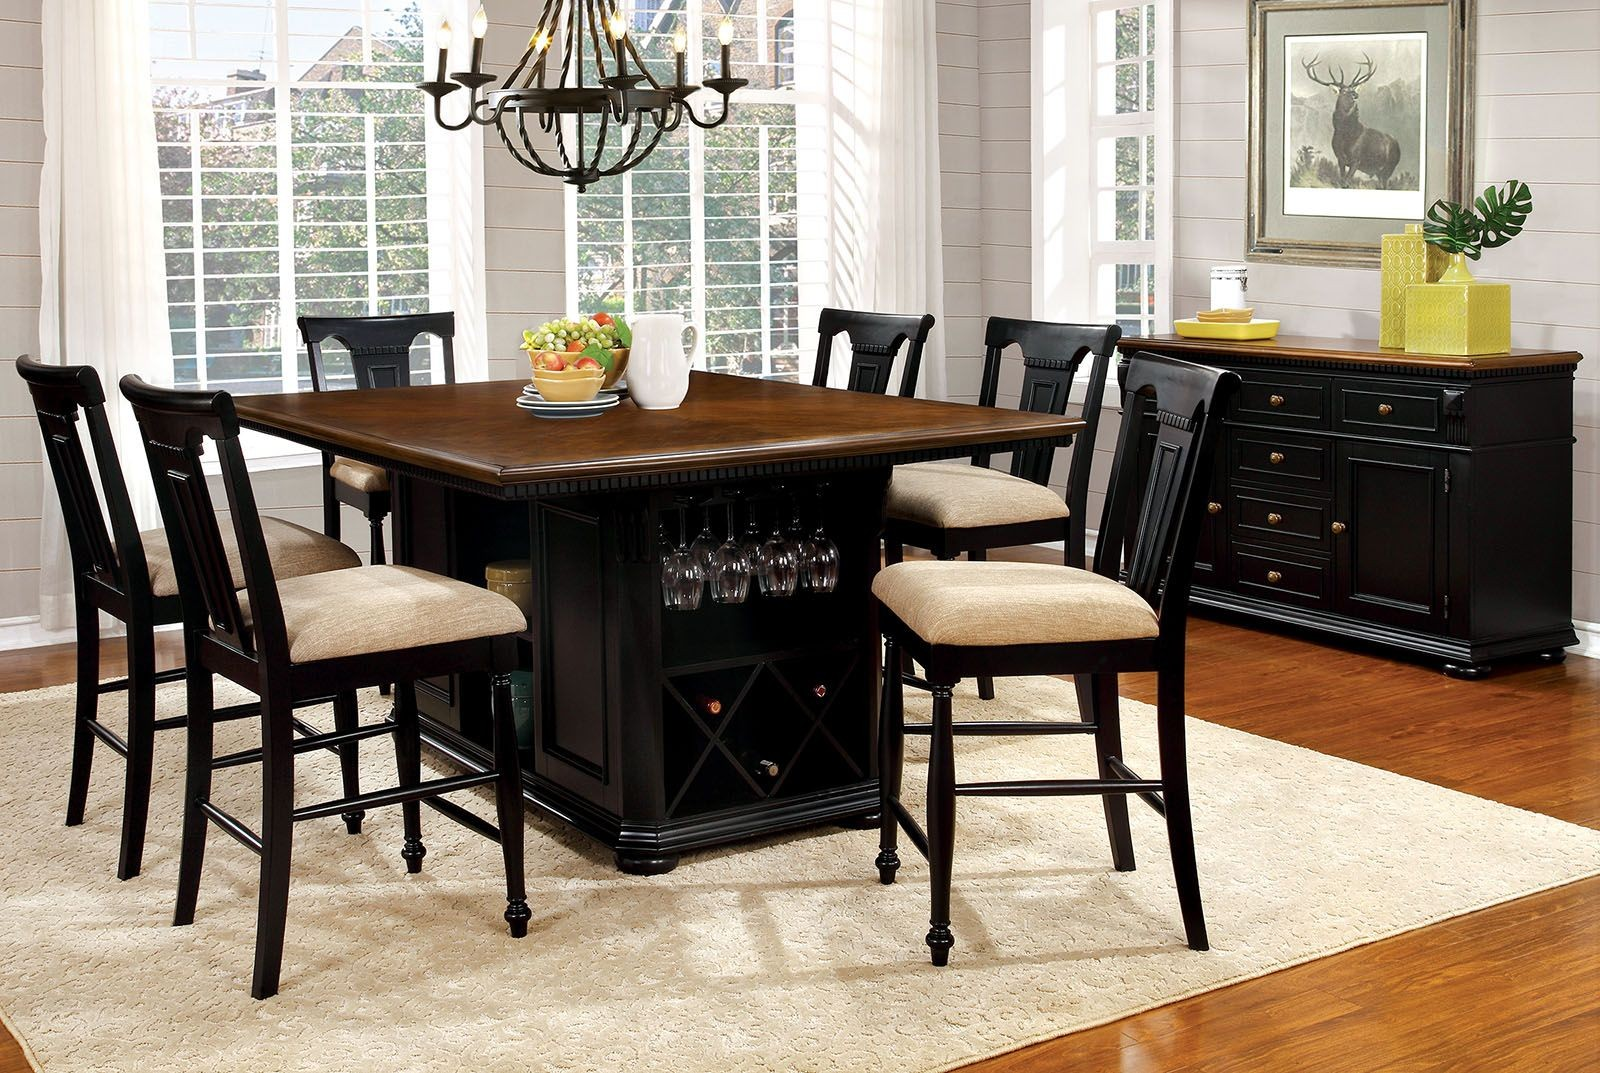 Sabrina cherry black counter height dining room set from for Furniture of america furniture